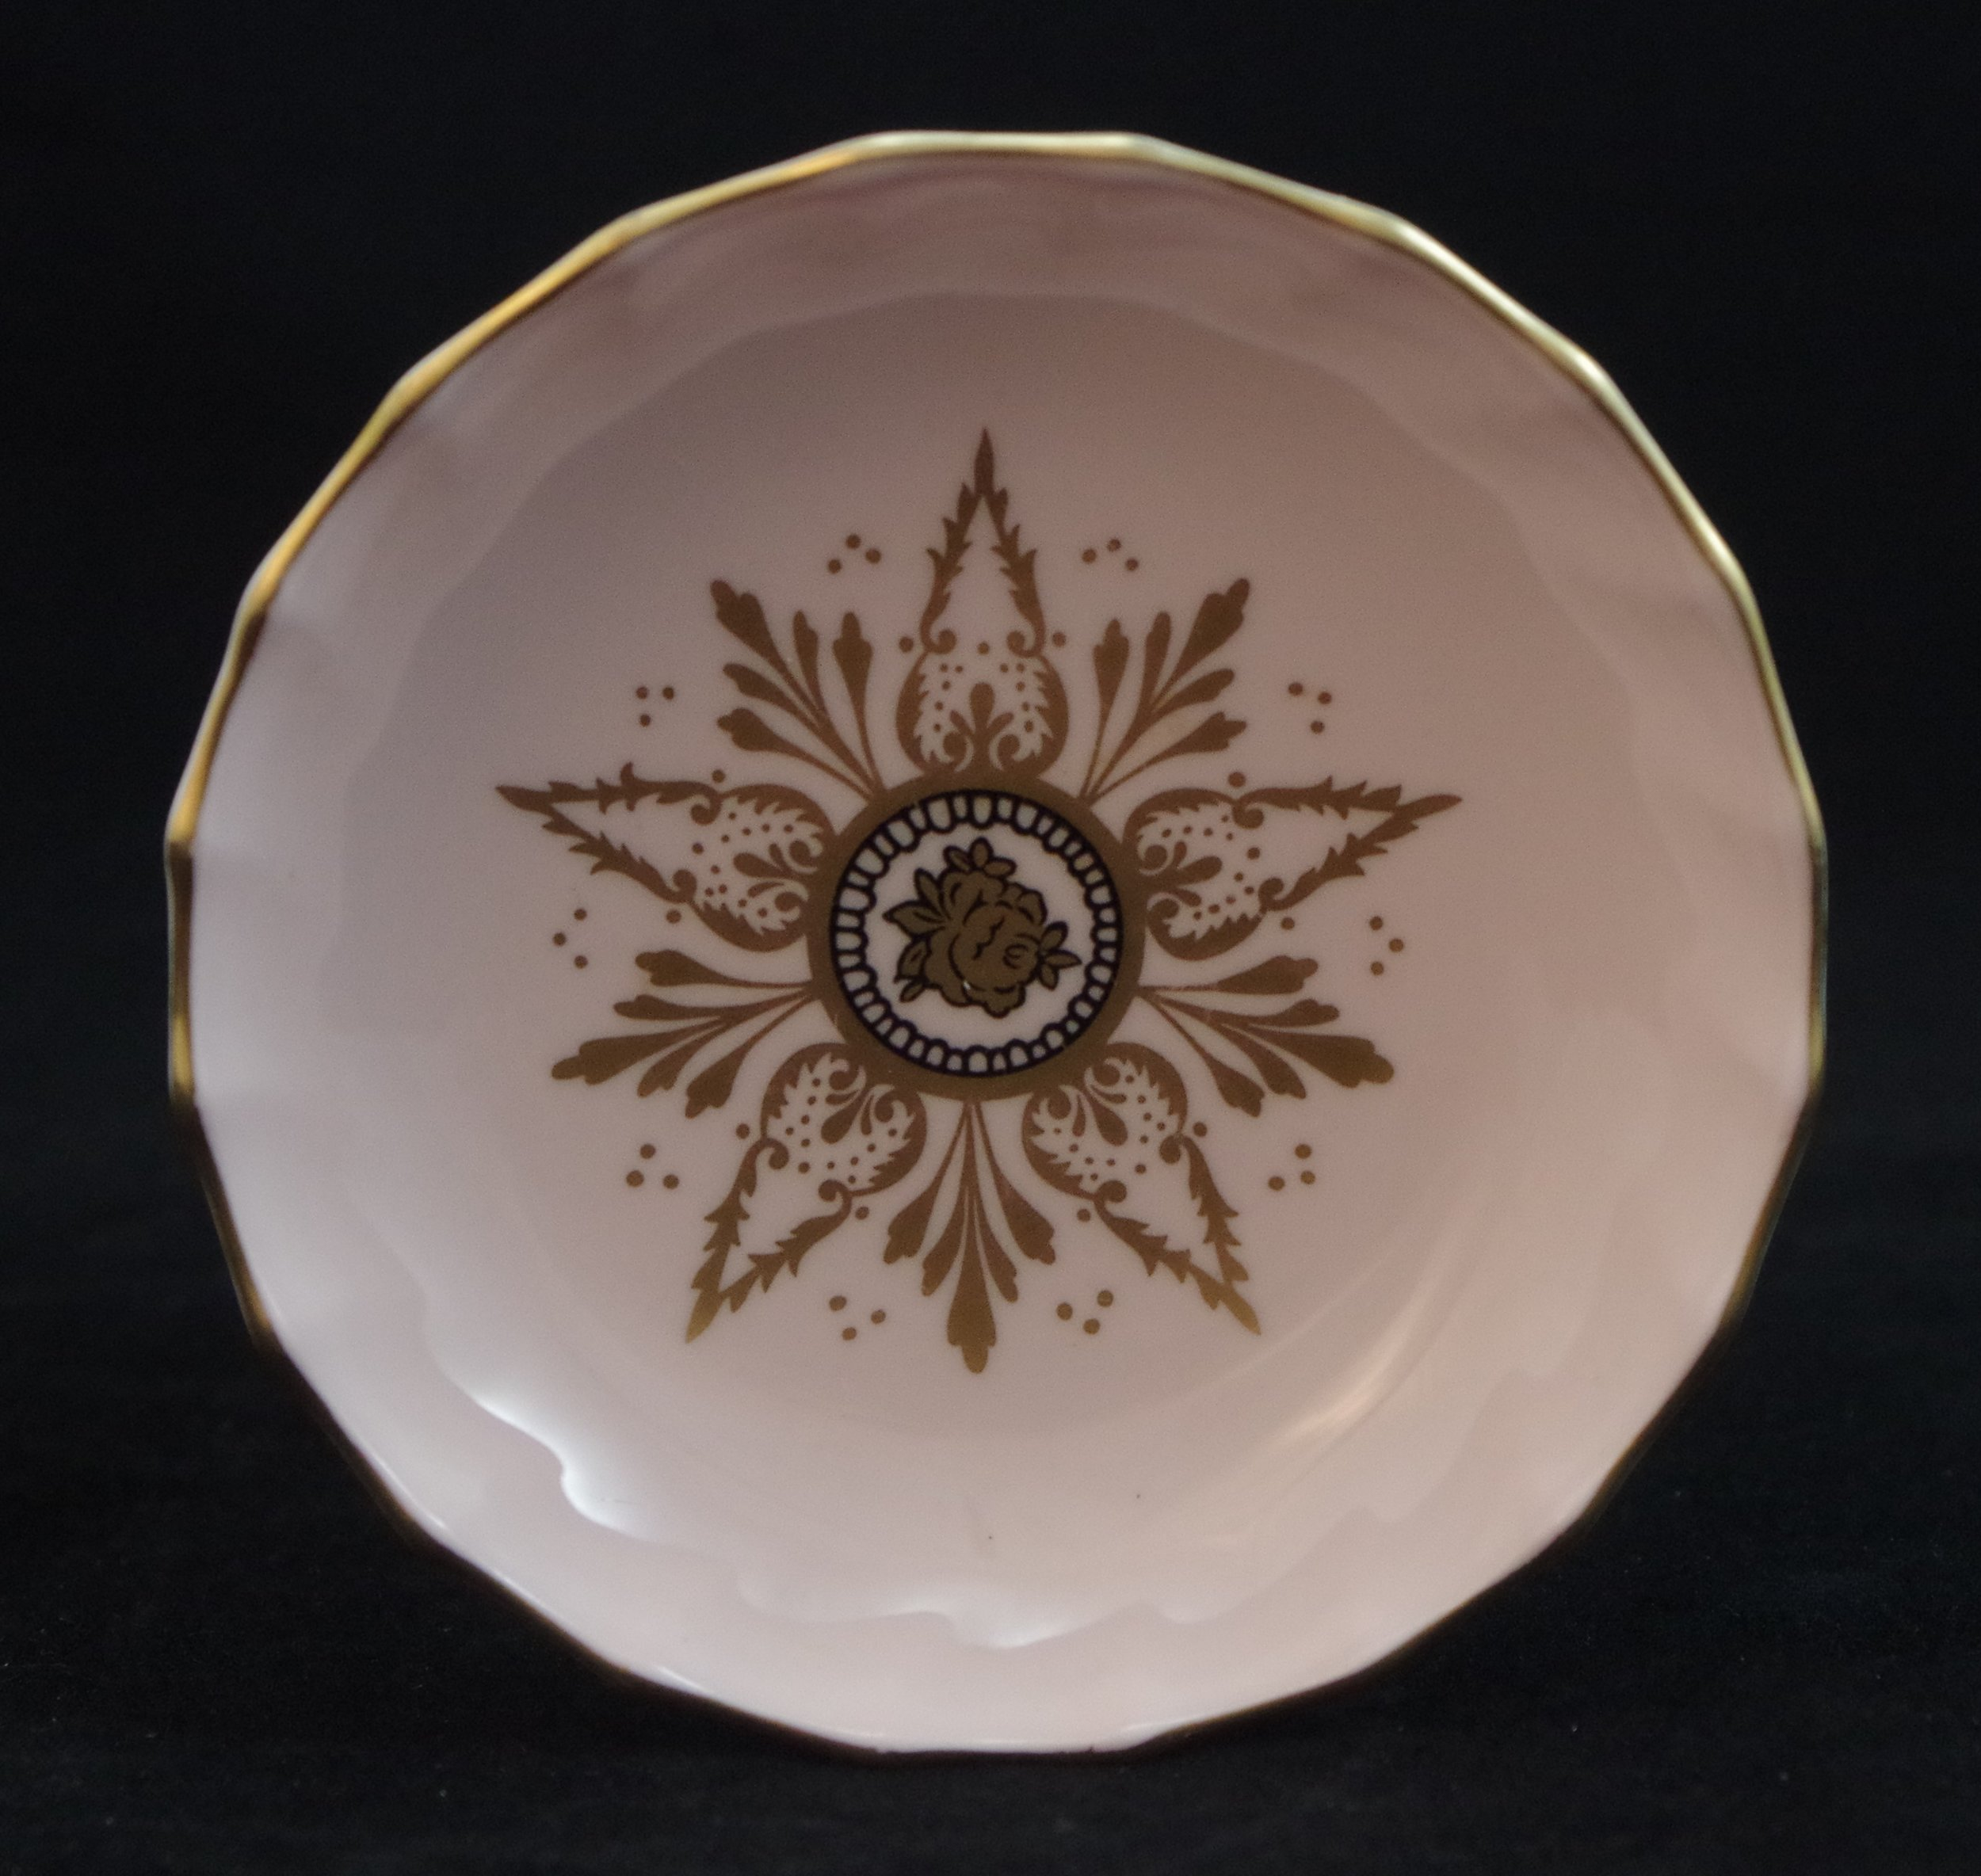 royal-crown-derby-boston-round-tray-salmon-derby-star